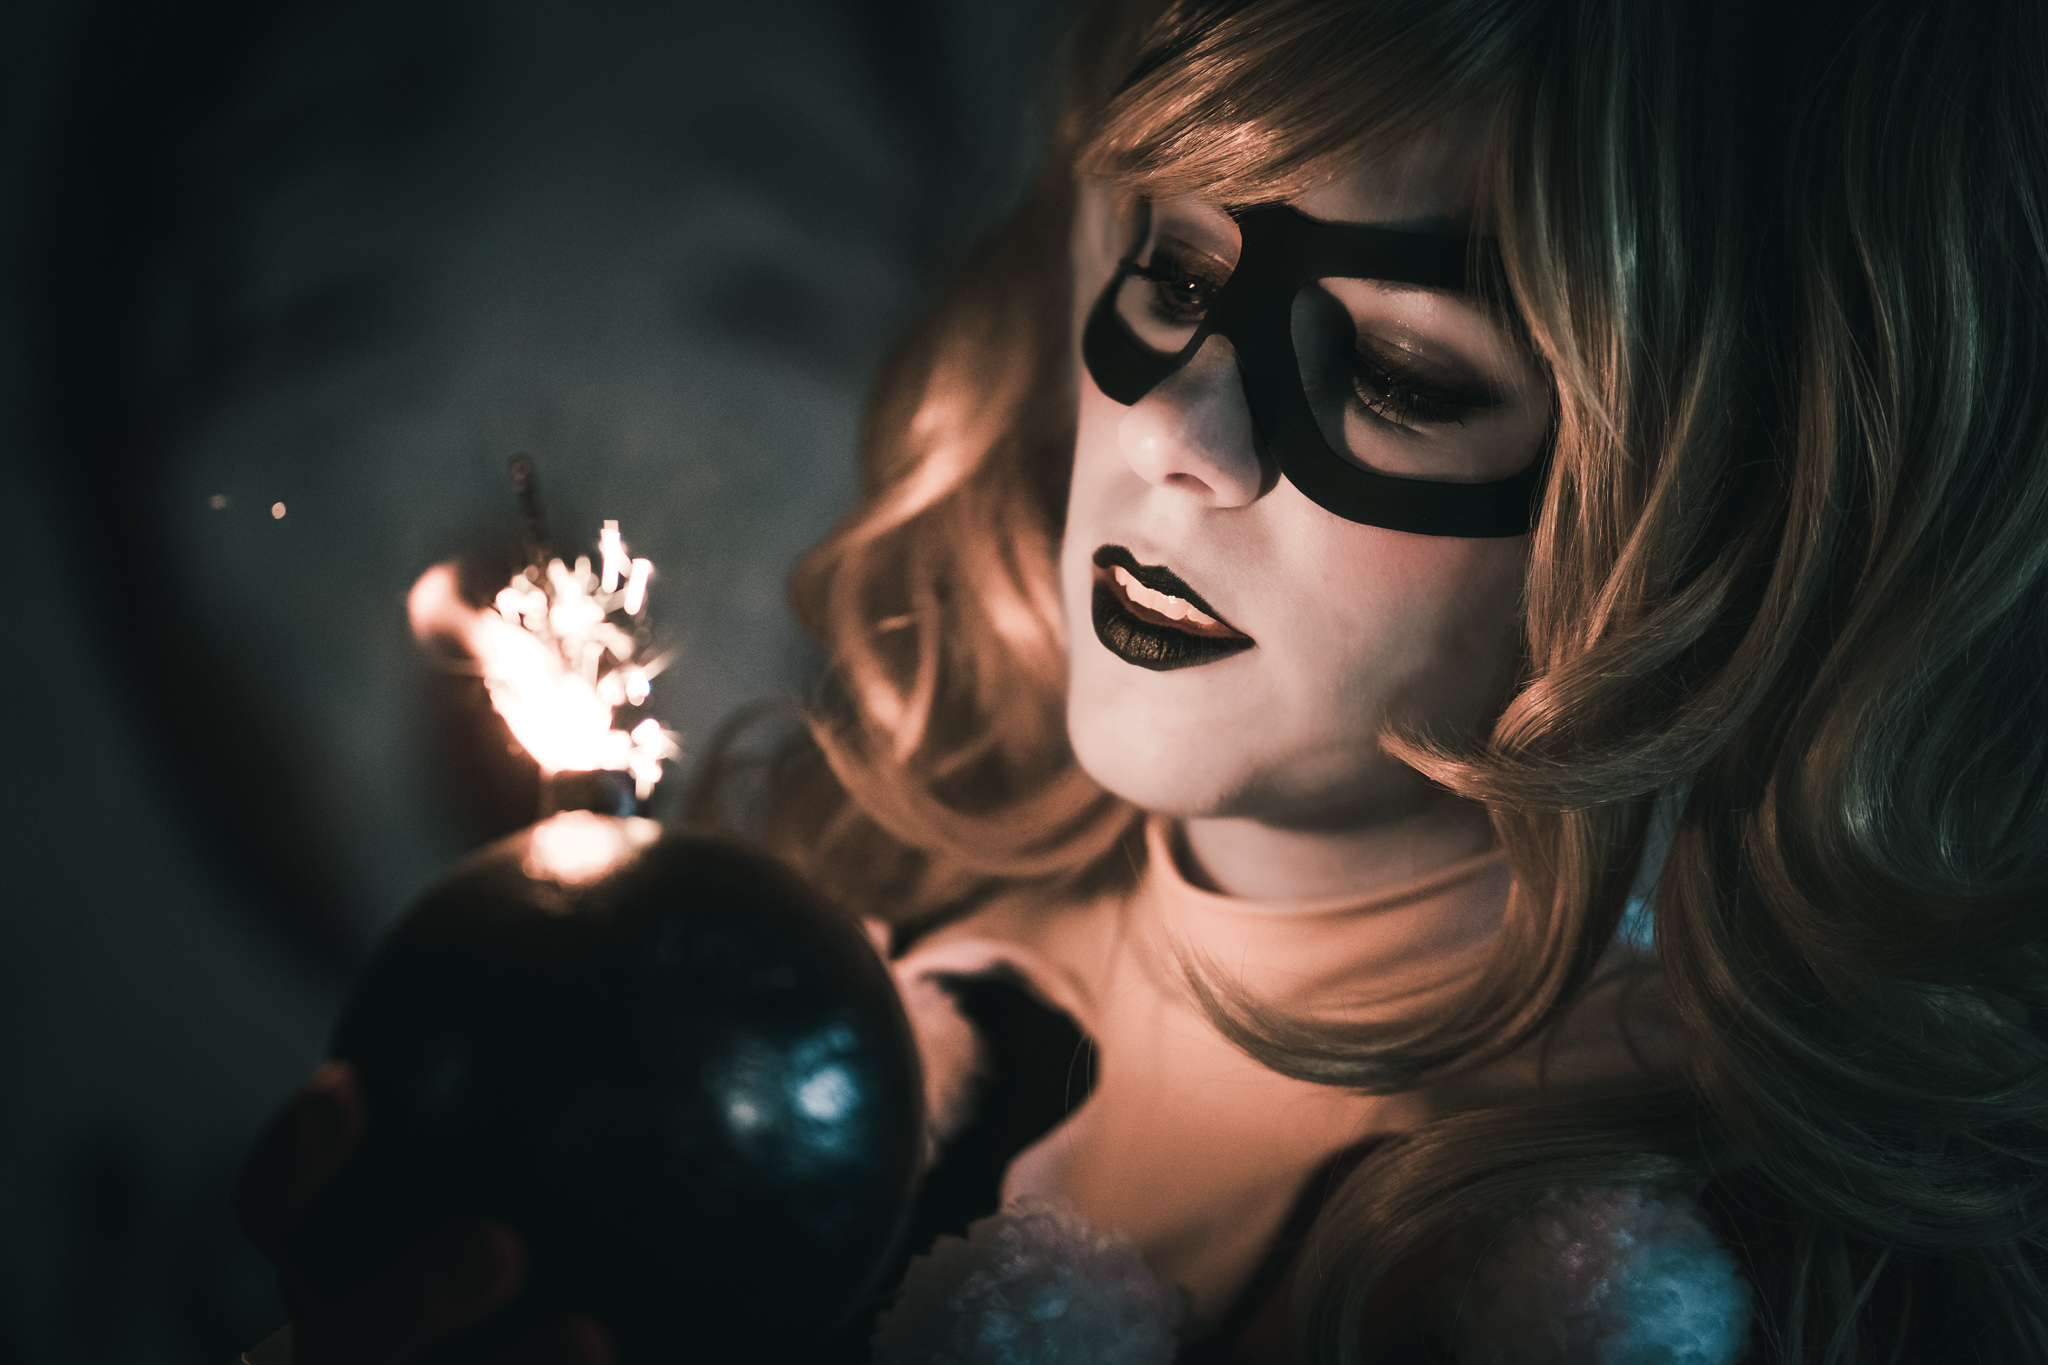 cosplayer impersonifying Harley Quinn, famous Marvel chacacter